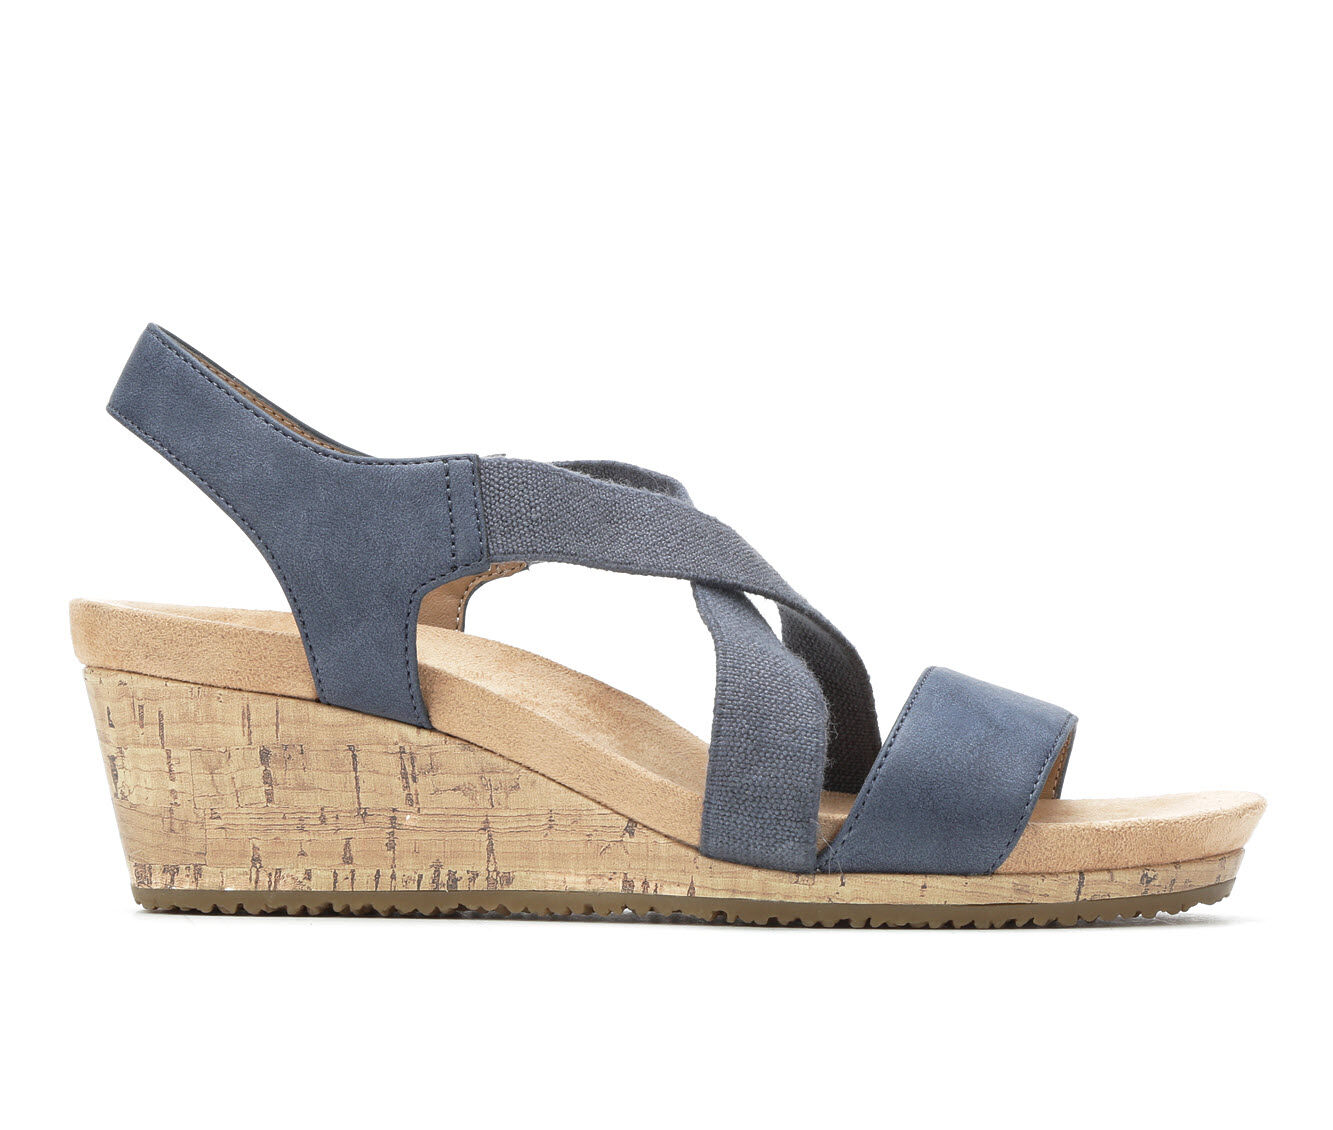 buy authentic new arrivals Women's LifeStride Mexico Wedges Navy